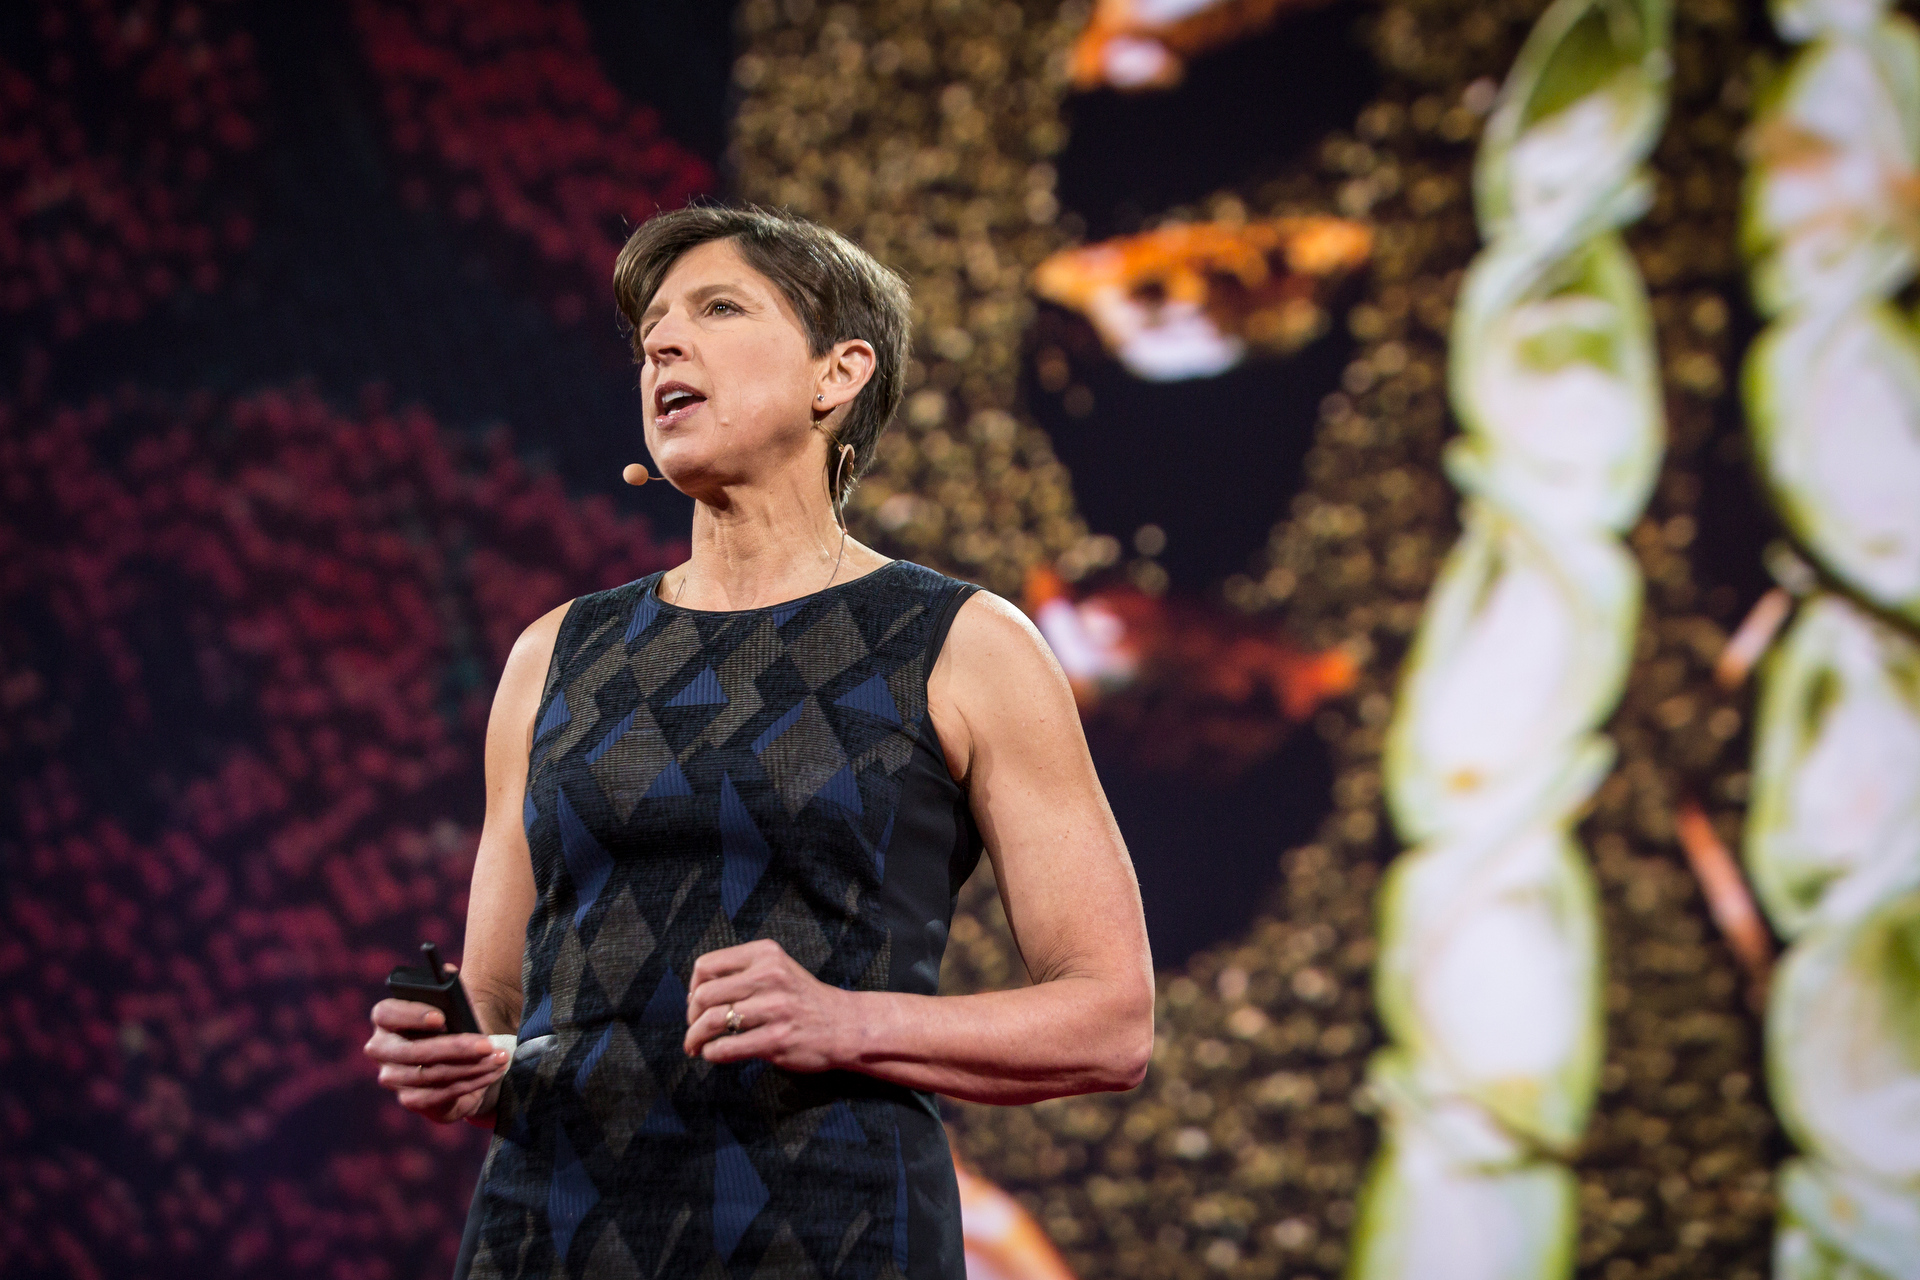 Pamela Ronald speaks at TED2015 - Truth and Dare, Session 6. Photo: Bret Hartman/TED